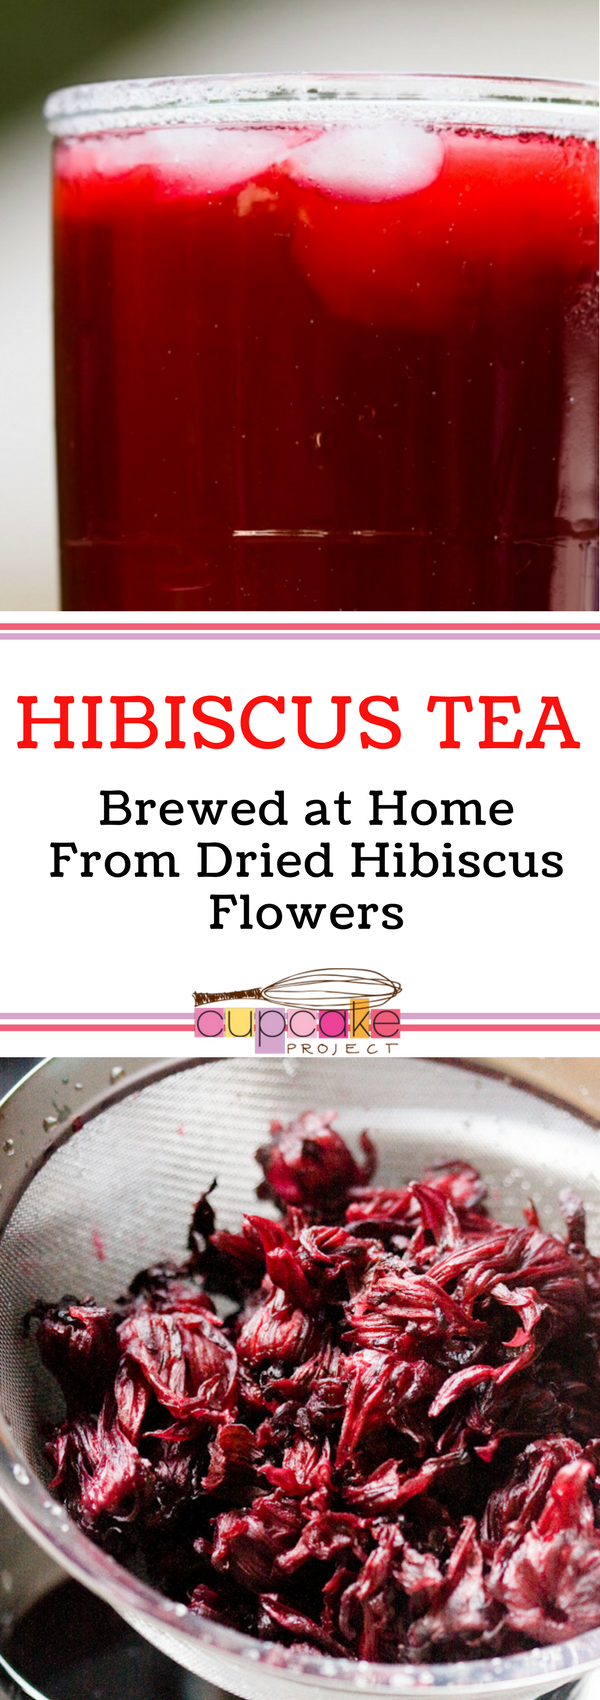 Hibiscus tea brewed at home from dried hibiscus flowers recipe hibiscus tea brewed at home from dried hibiscus flowers recipe cupcake project by cupcake project pinterest hibiscus tea baking dessert recipes izmirmasajfo